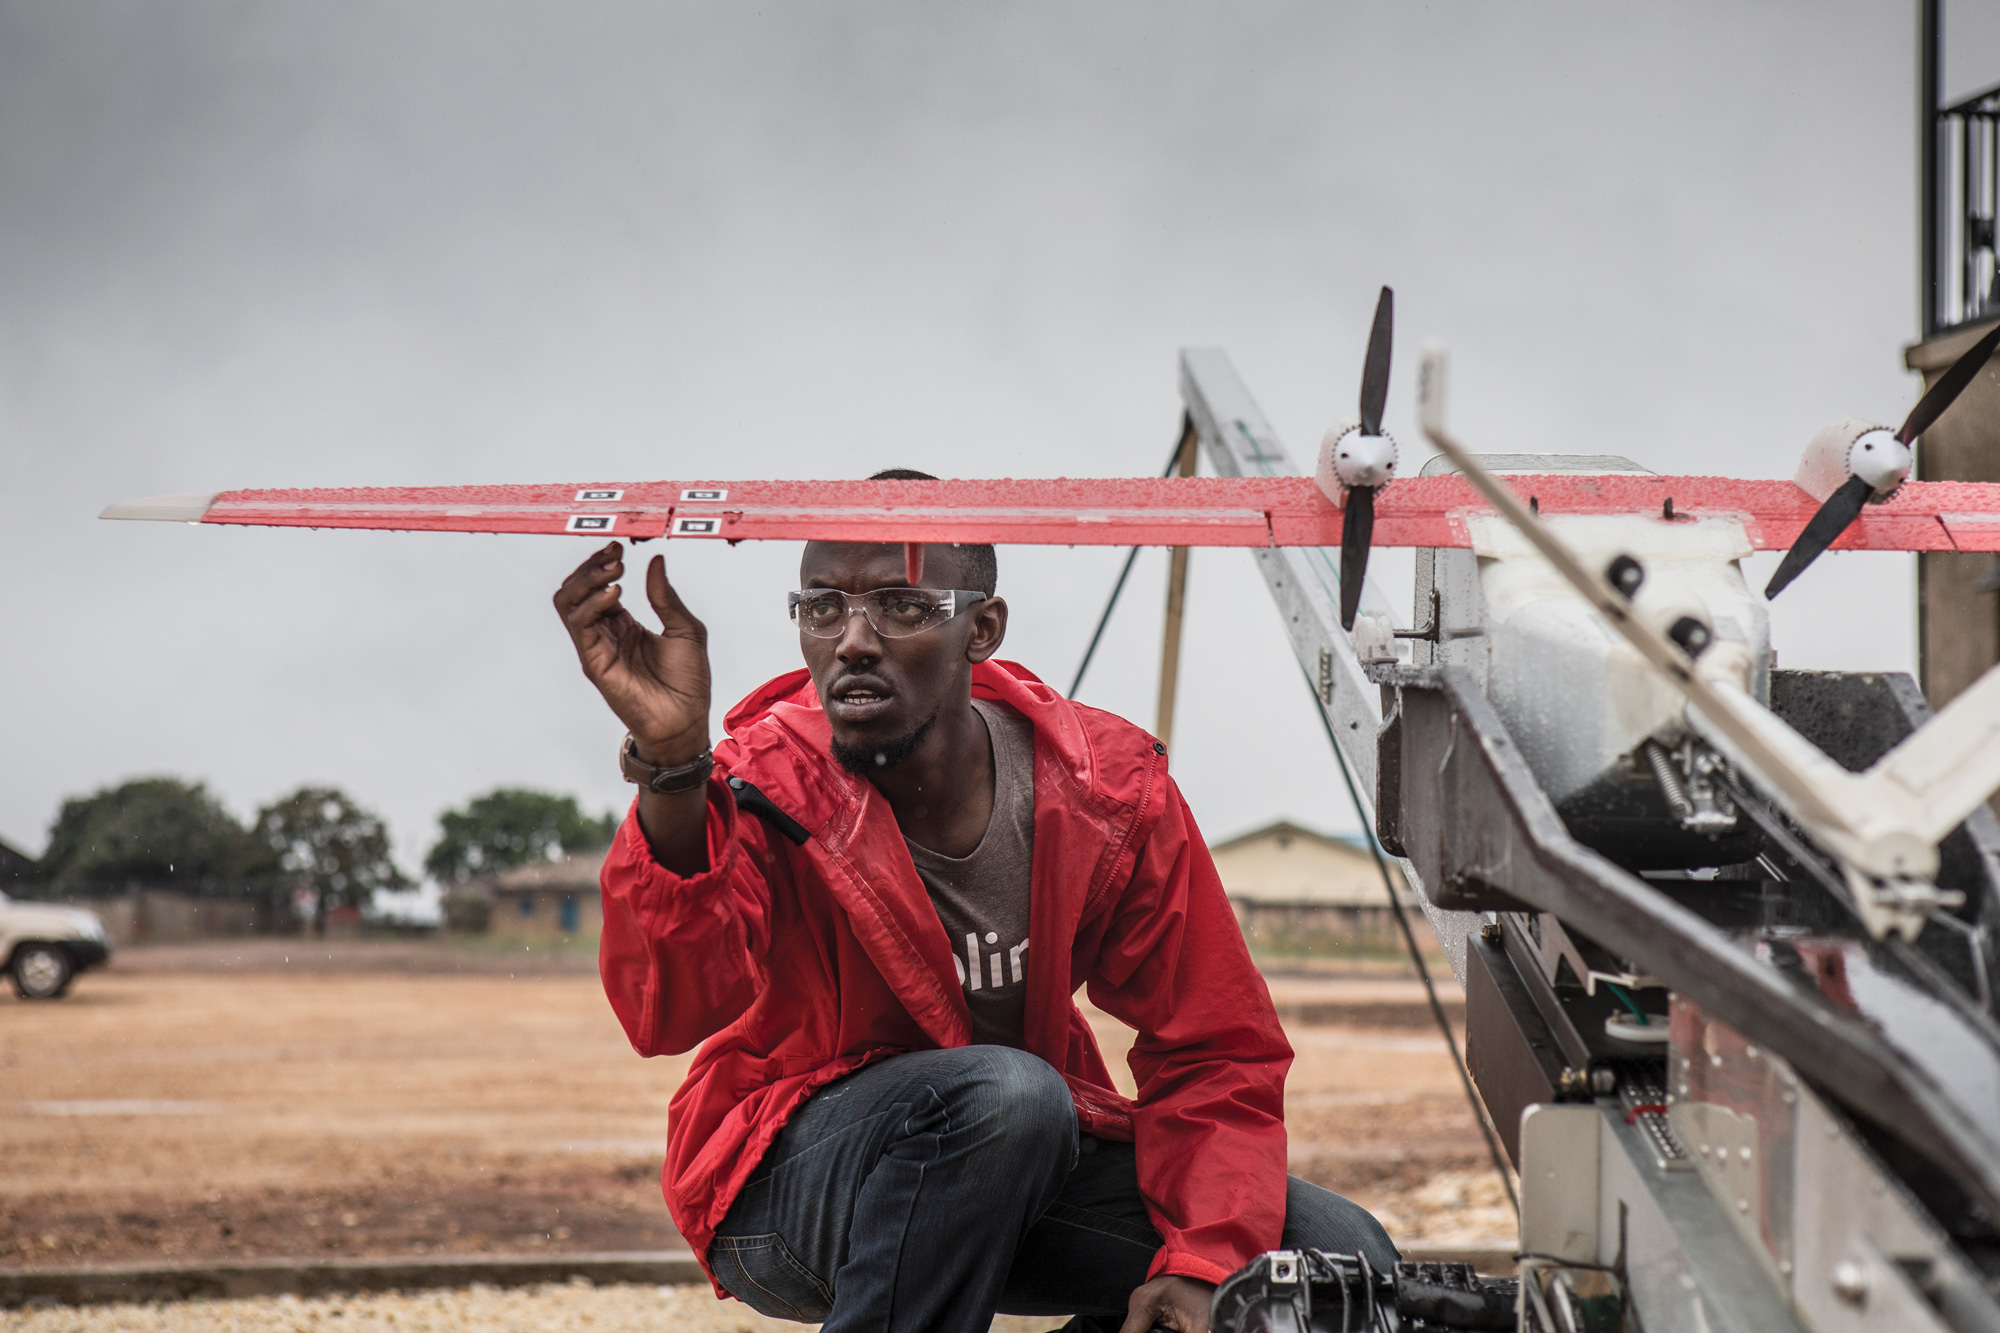 """<b><a href=""""https://www.technologyreview.com/s/608034/blood-from-the-sky-ziplines-ambitious-medical-drone-delivery-in-africa/"""" target=""""_blank"""">Zipline's Ambitious Medical Drone Delivery in Africa</a></b> <br> Photographs by Jason Florio"""